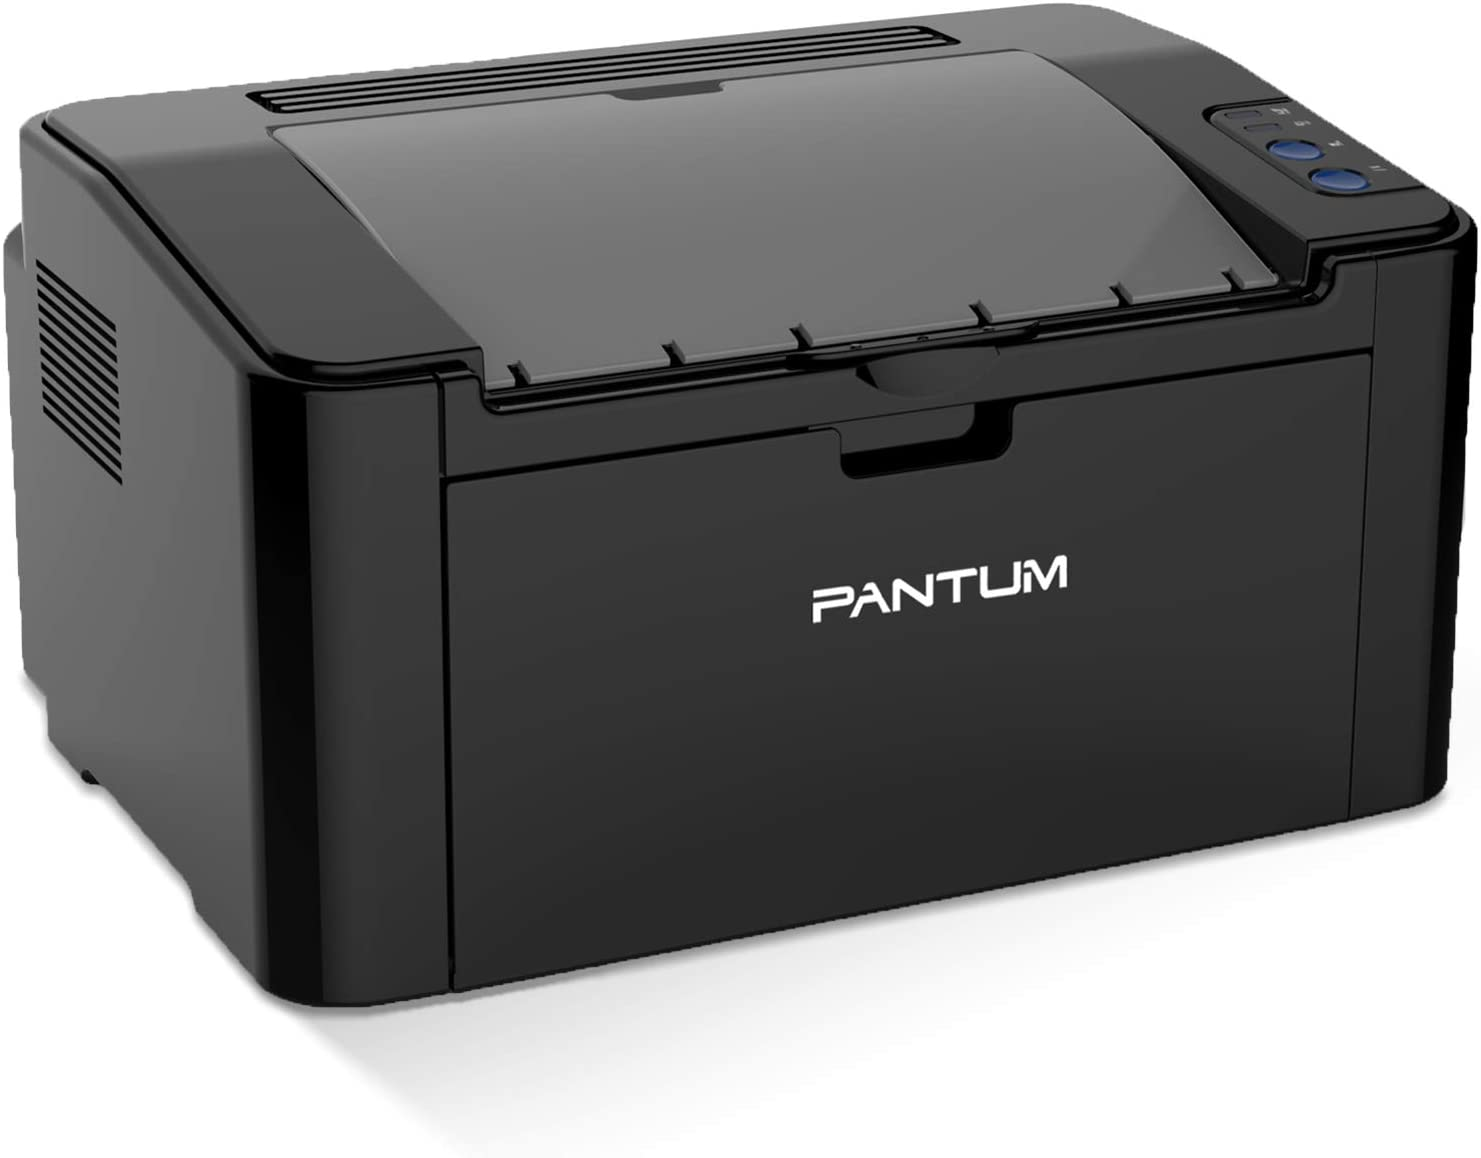 Pantum P2502W Monochrome Simple Small Stylish Design Laser Printer with Wireless Networking and Mobile Printing Convenient for School Home and Office